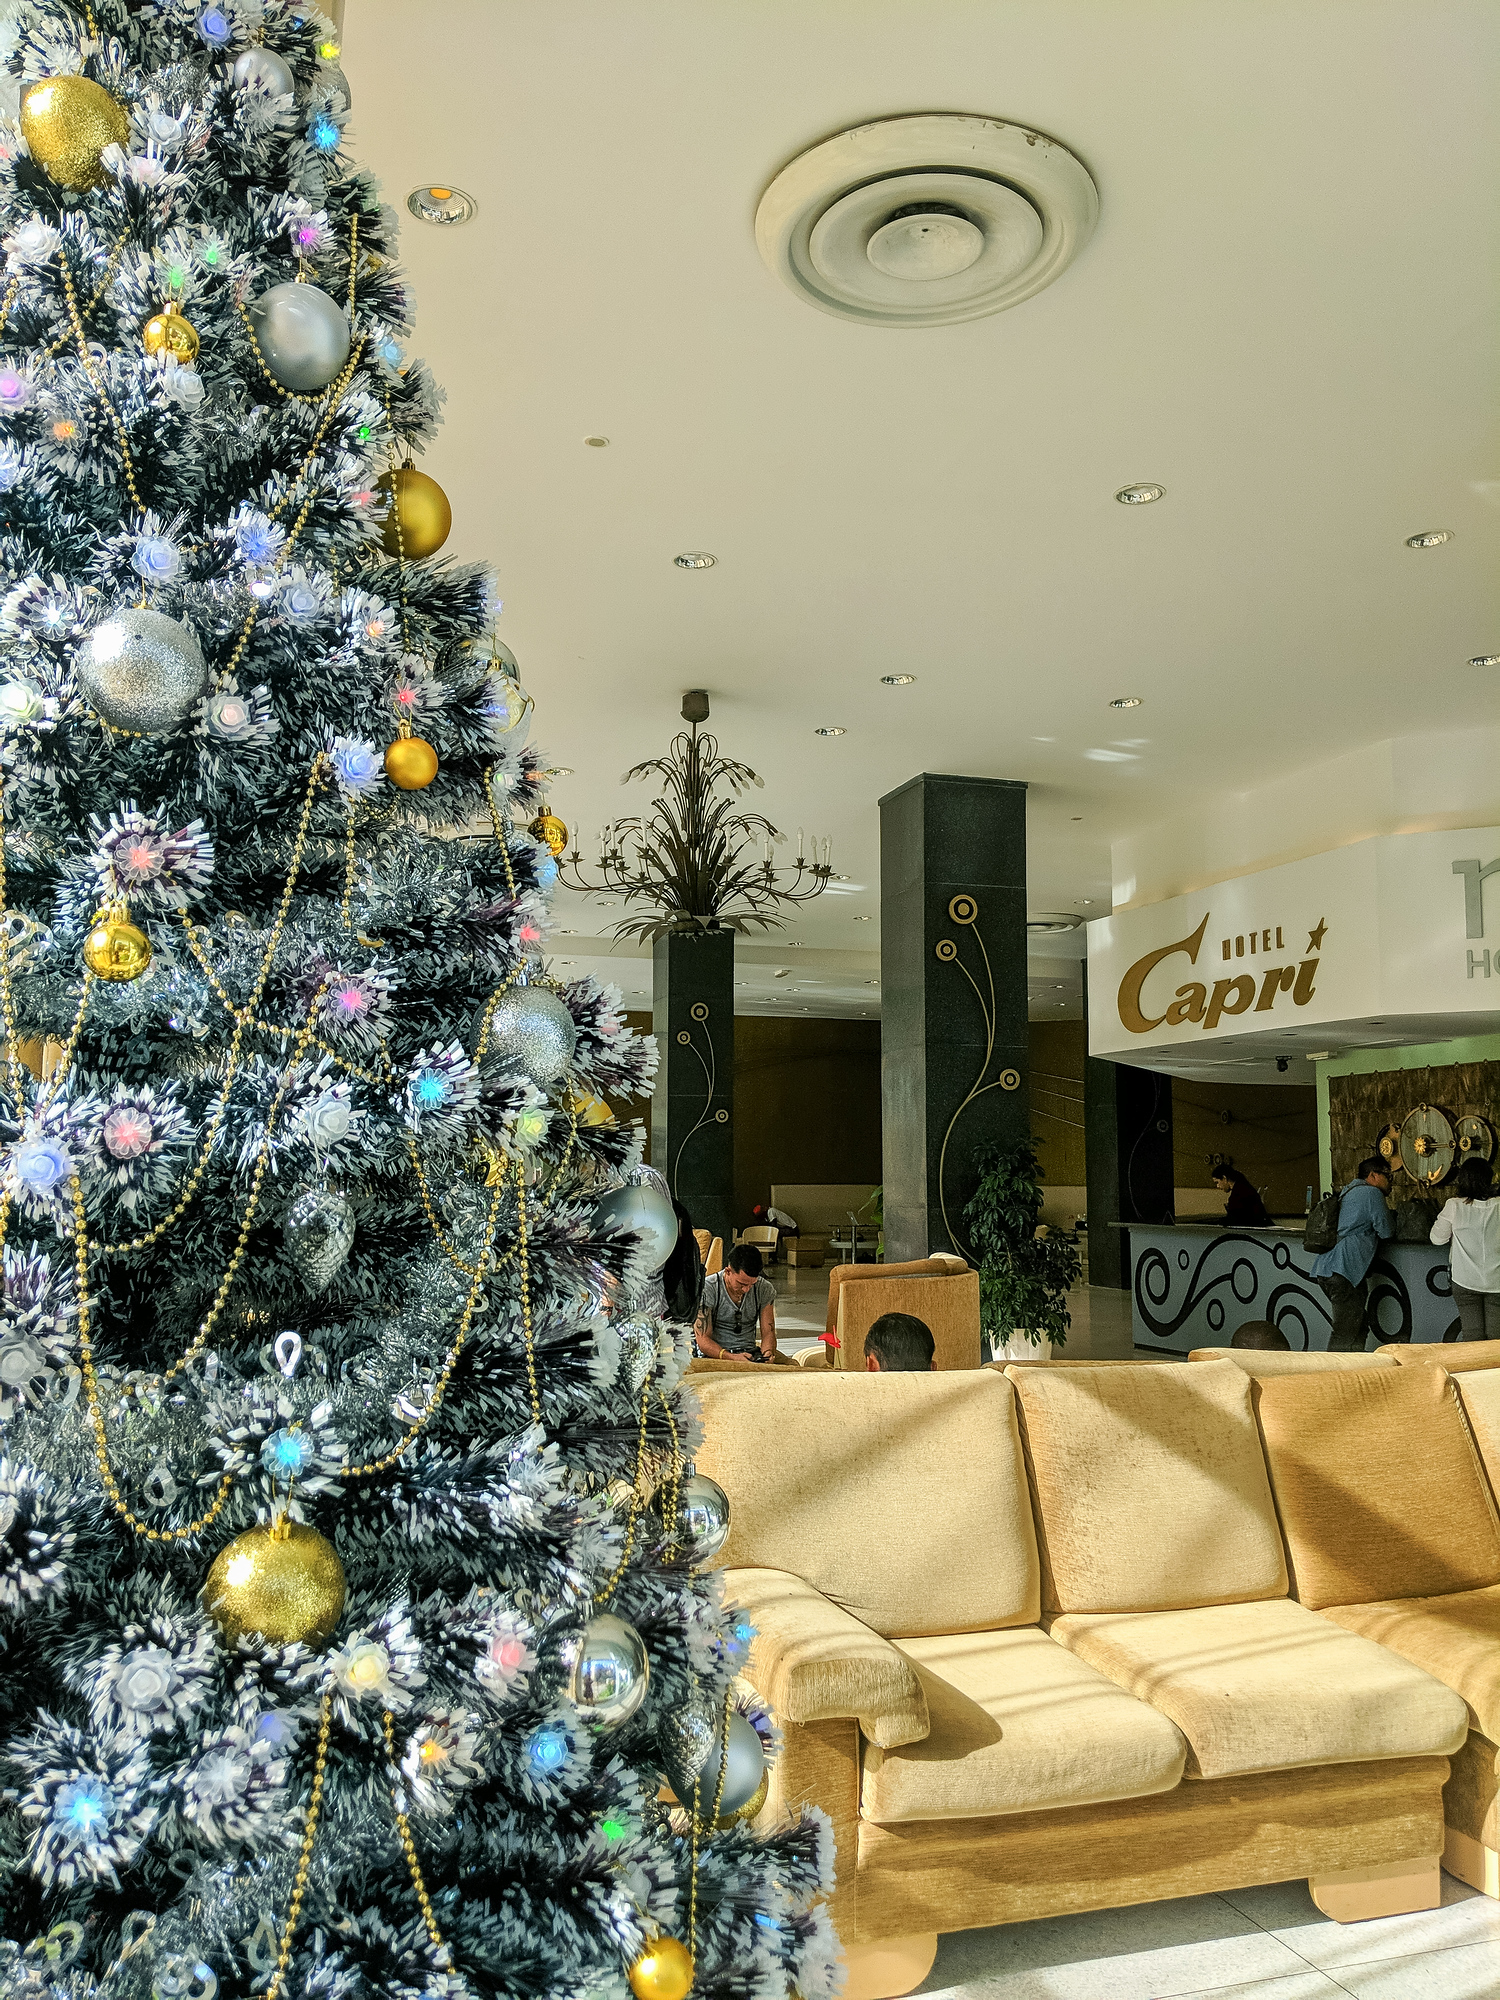 Christmas in Cuba at a hotel in Havana. A guide to how to spend Christmas in Cuba, where to go and what to see.